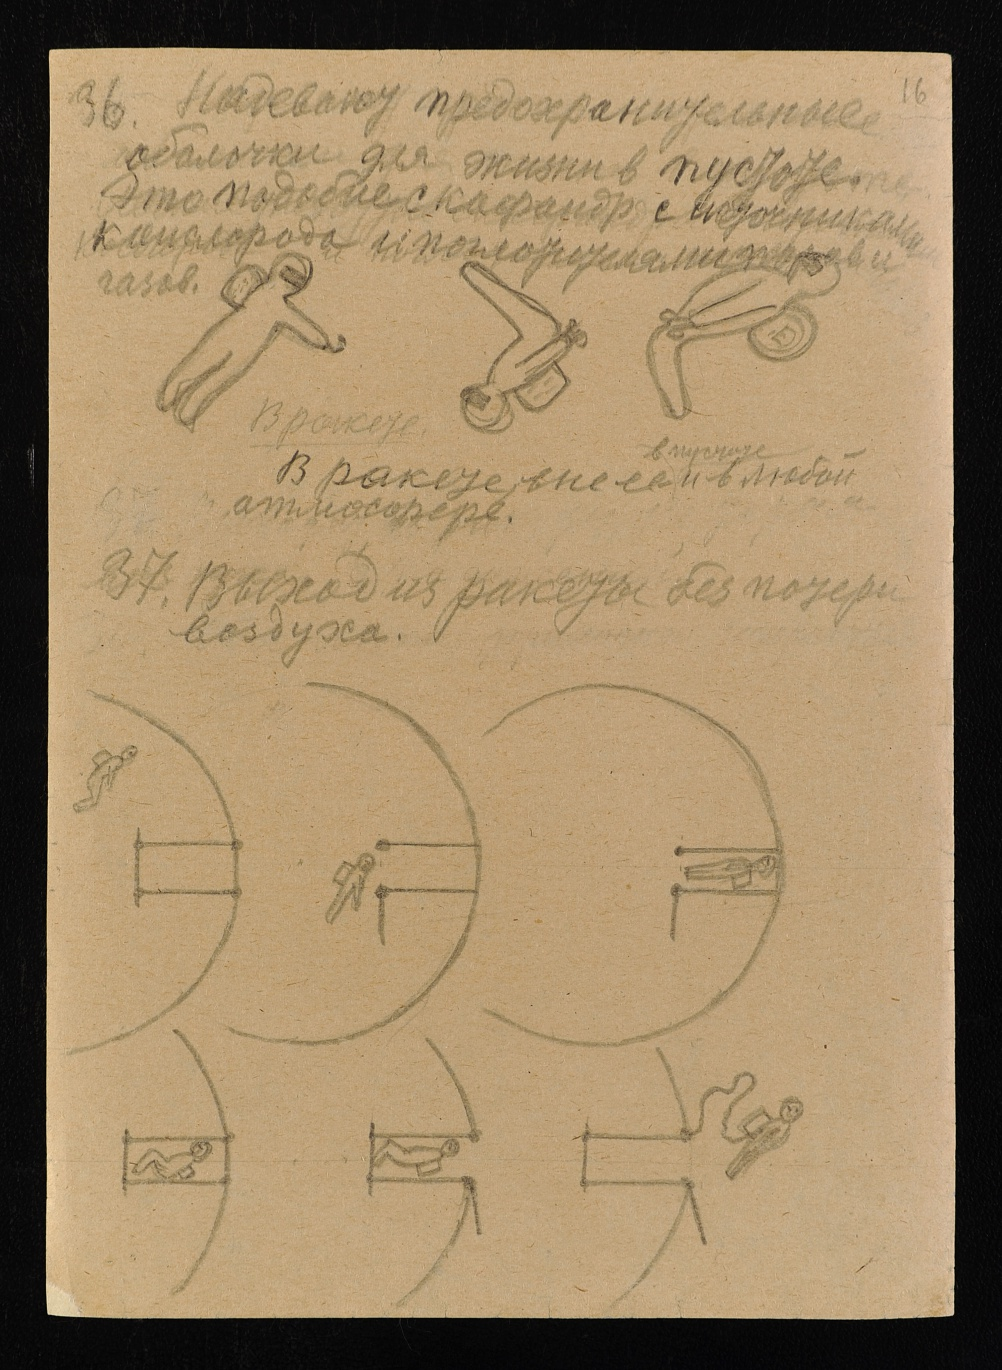 A page from Konstantin Tsiolkovsky Album of Cosmic Journeys, 1932. The Archive of the Russian Academy of Sciences.